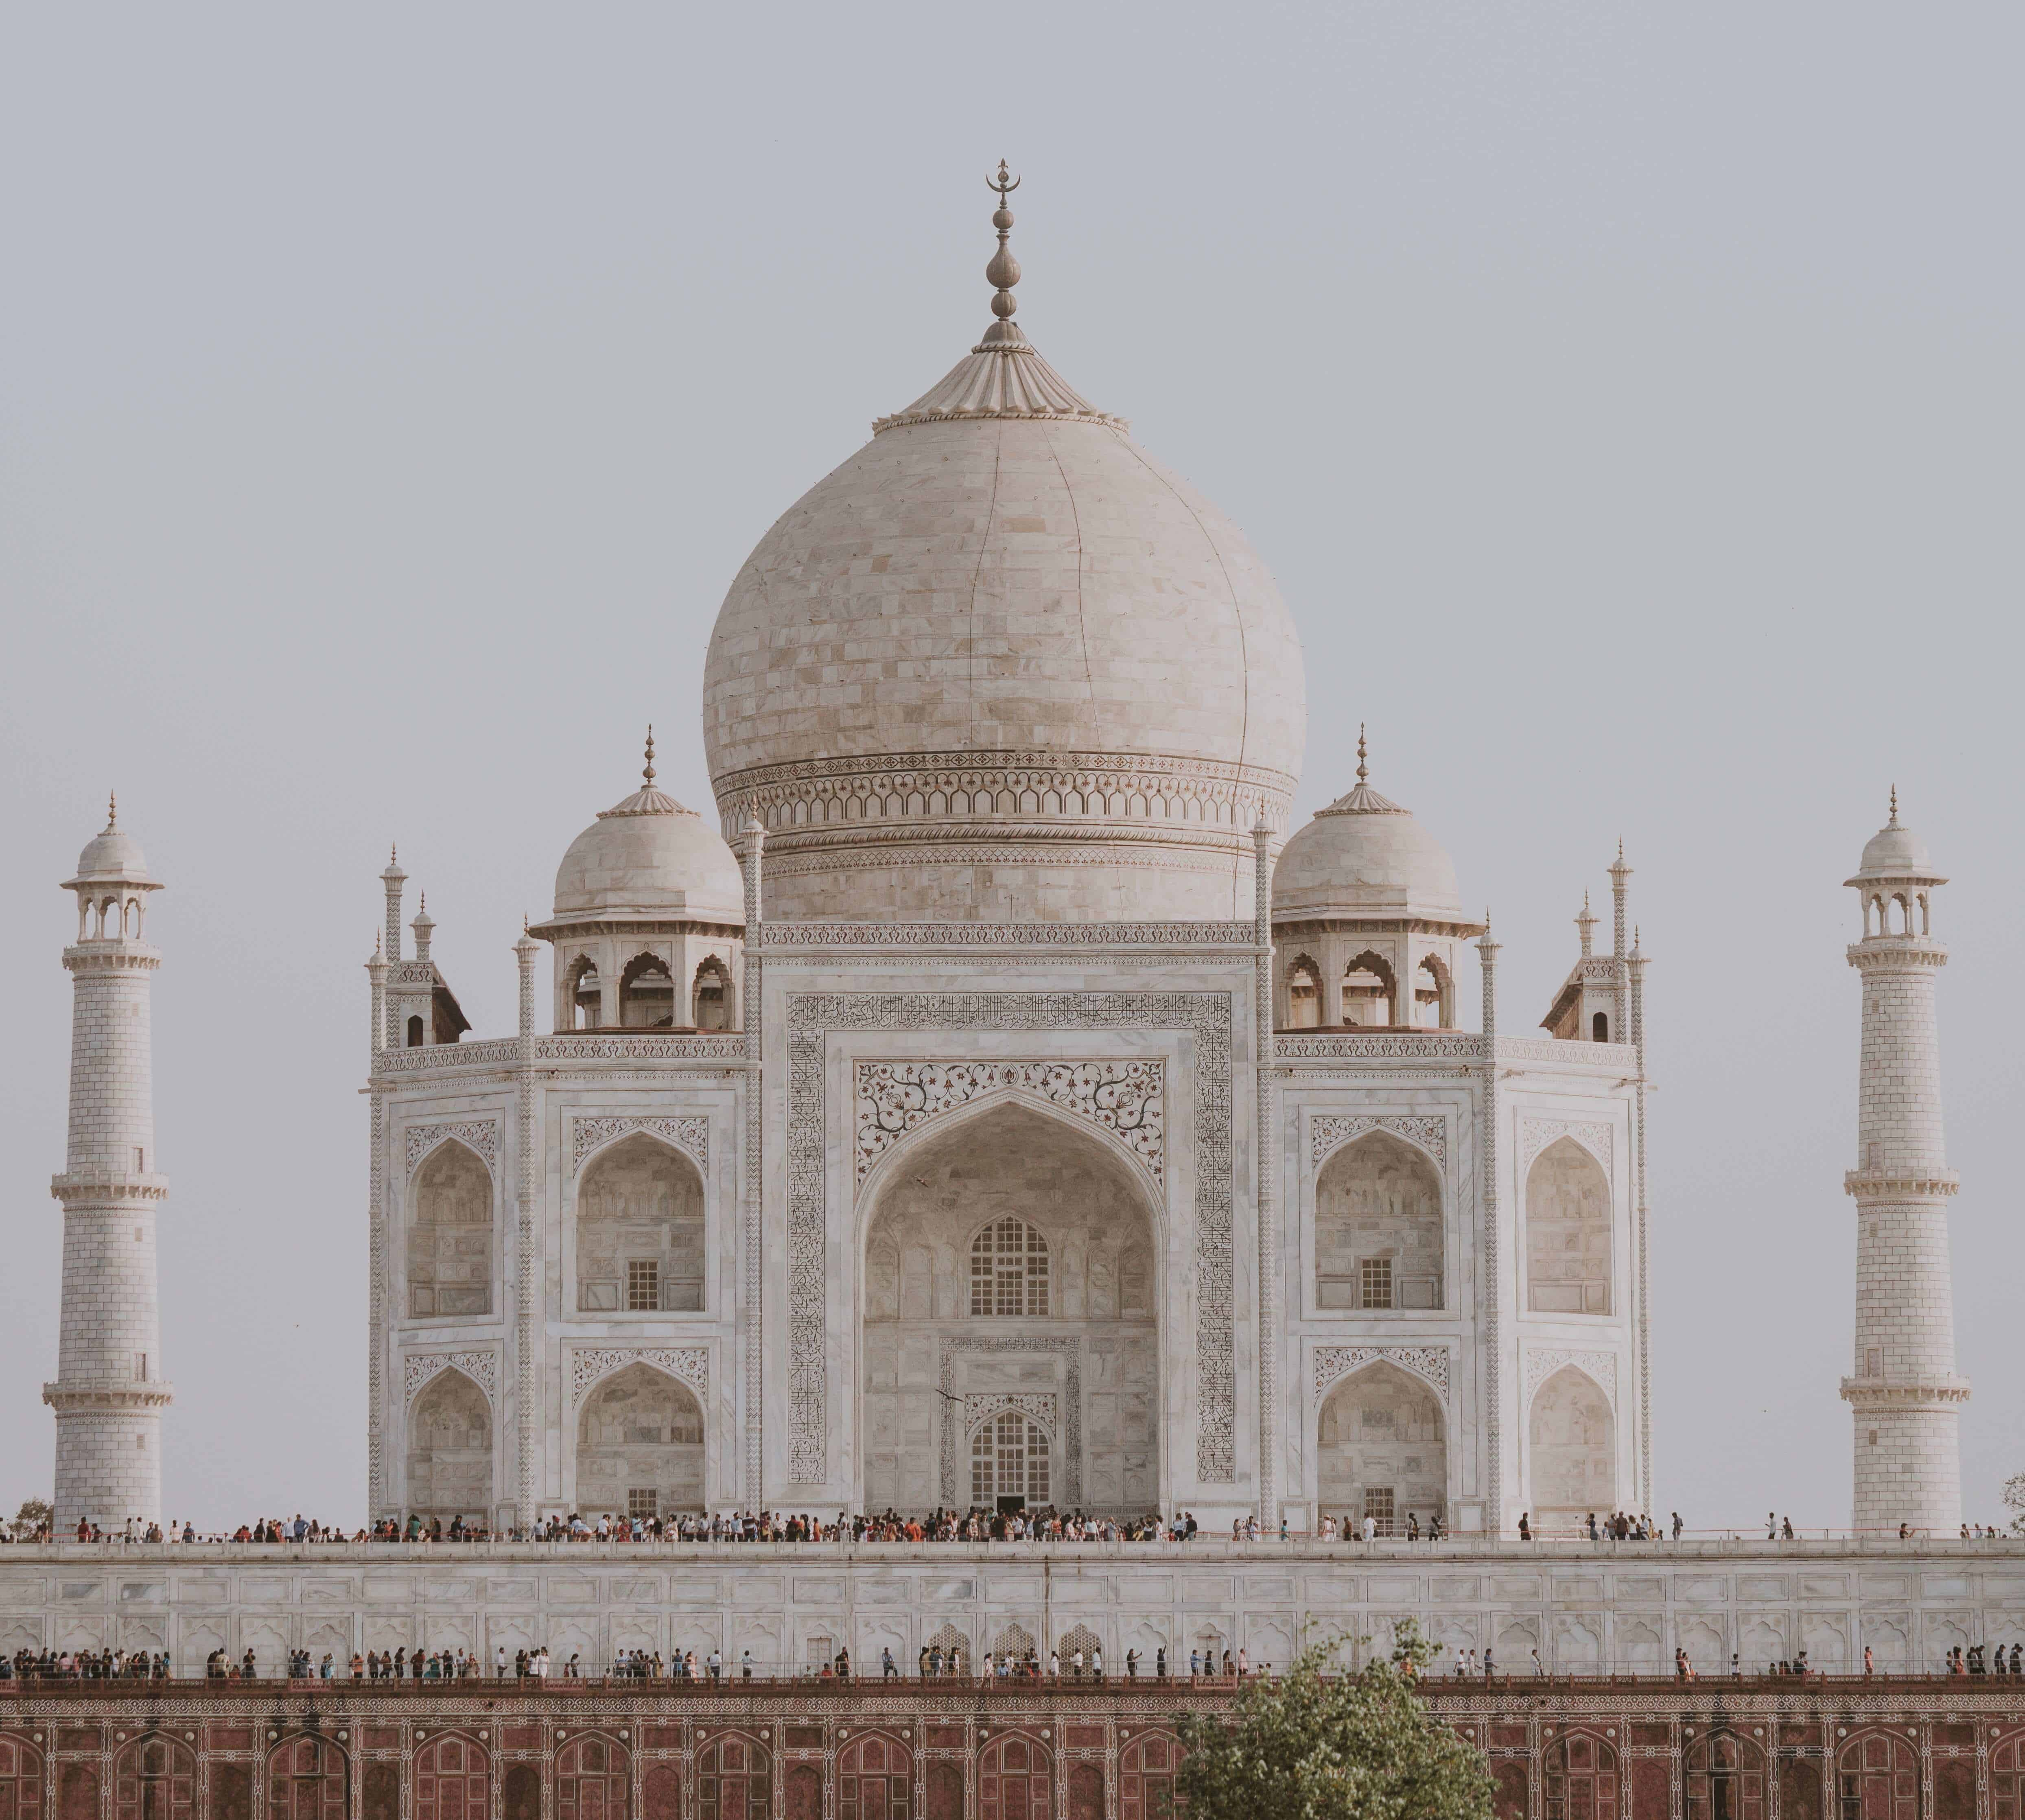 Taj Mahal visit – the complete guide